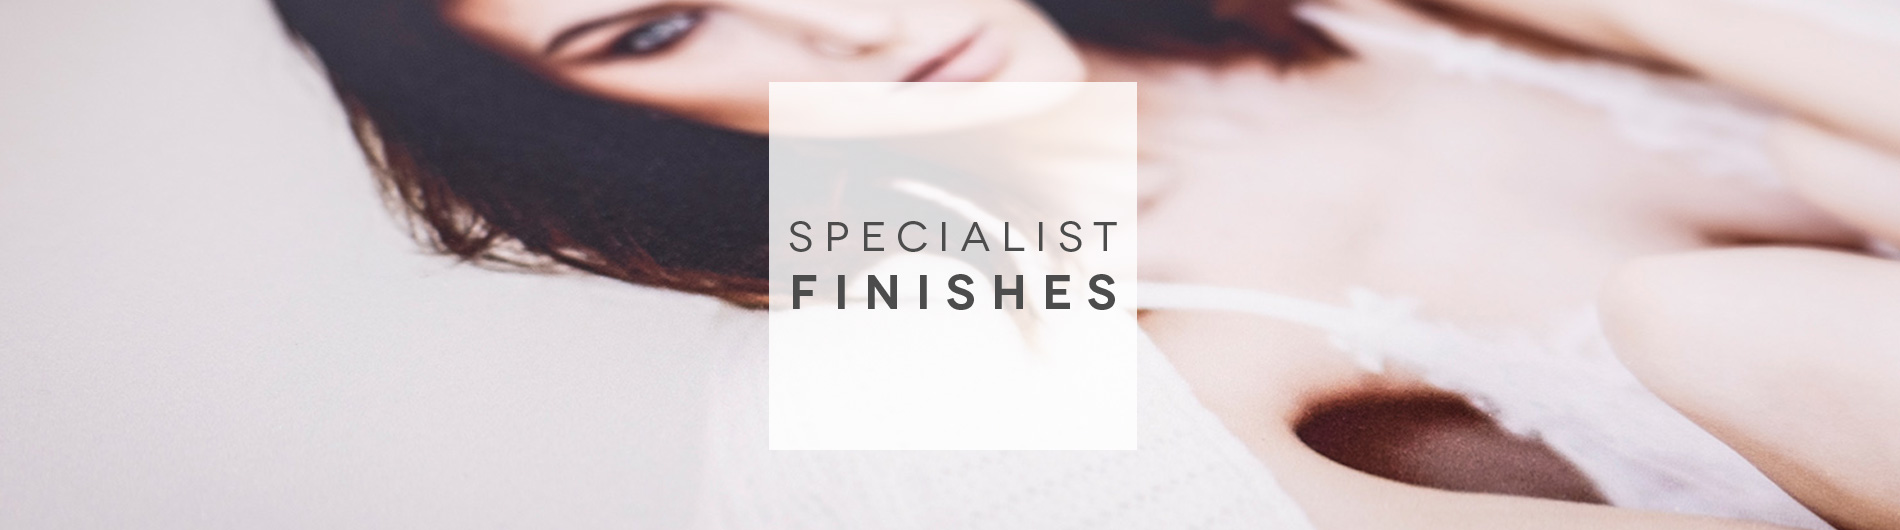 Specialist finishes digitalab